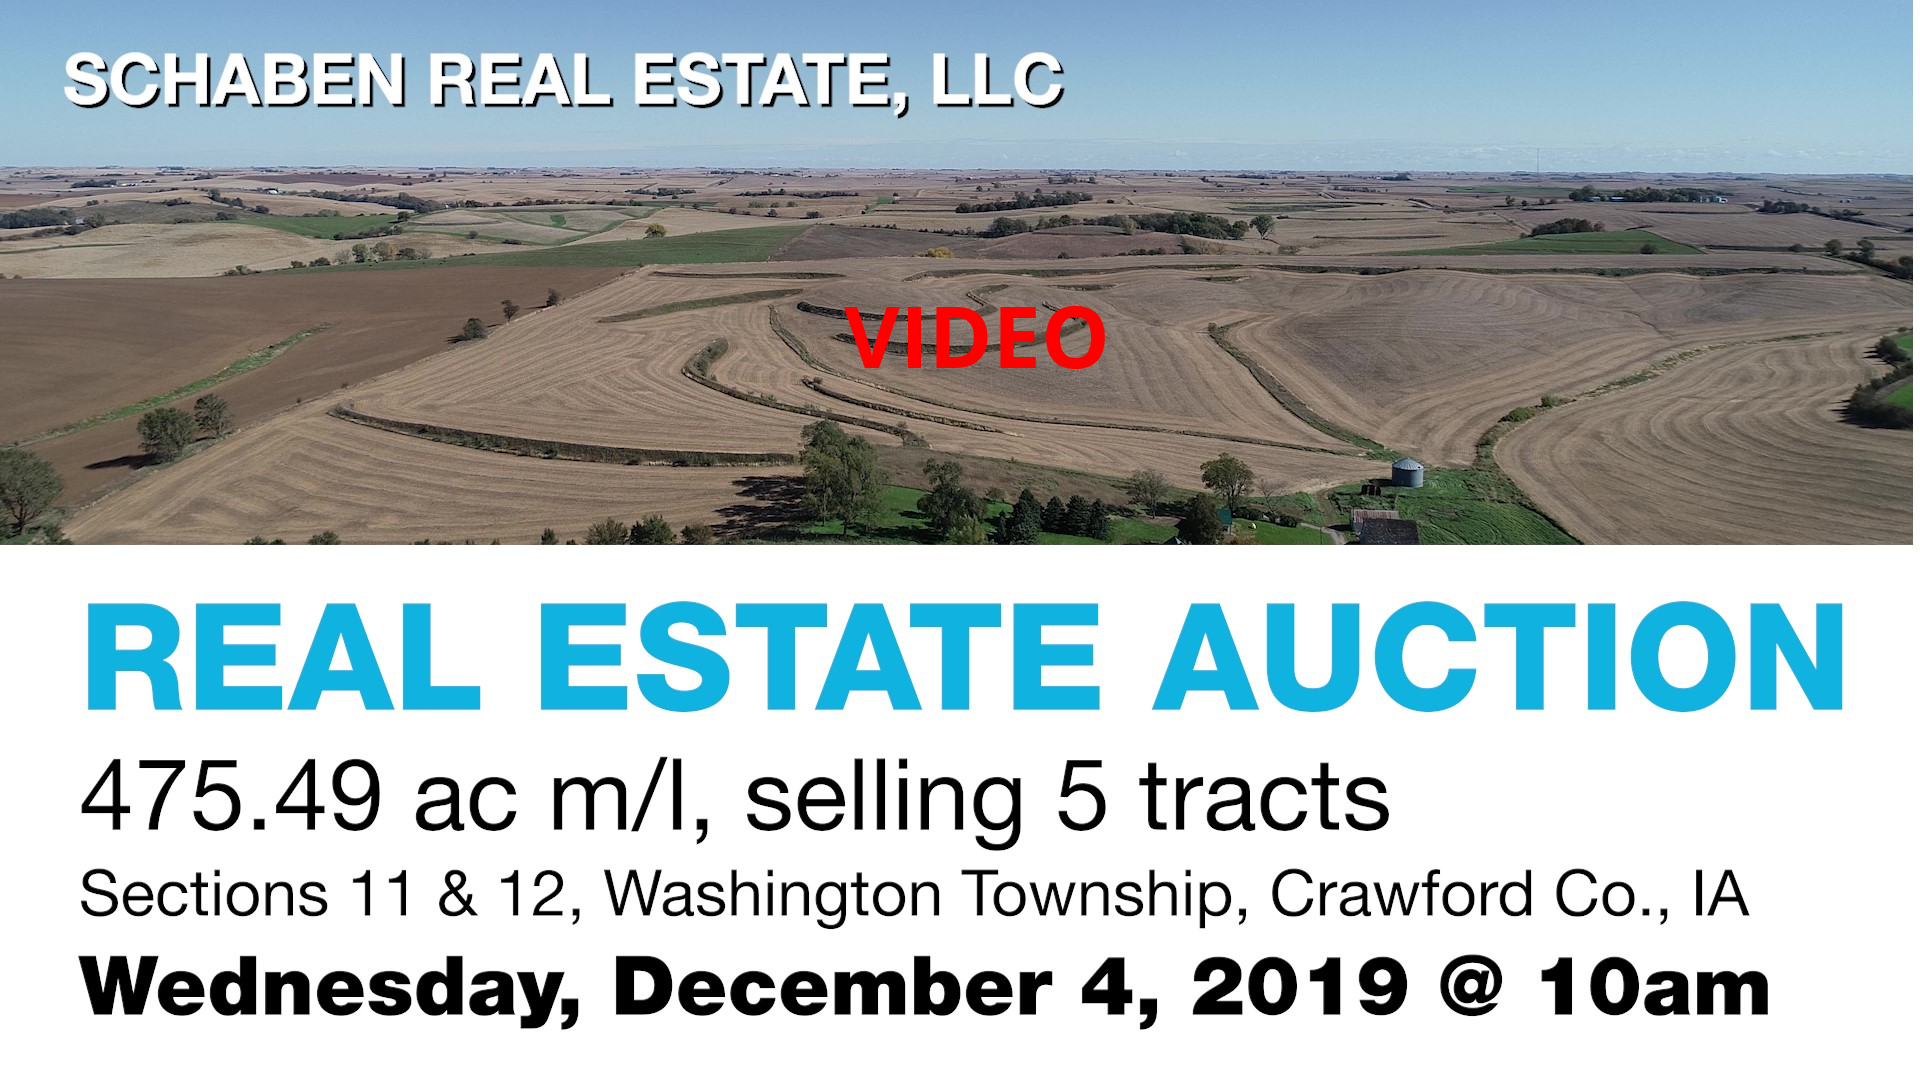 Click here for a video of the Von Tersch Trust Land to be auctioned on Wed, December 4th, 2019